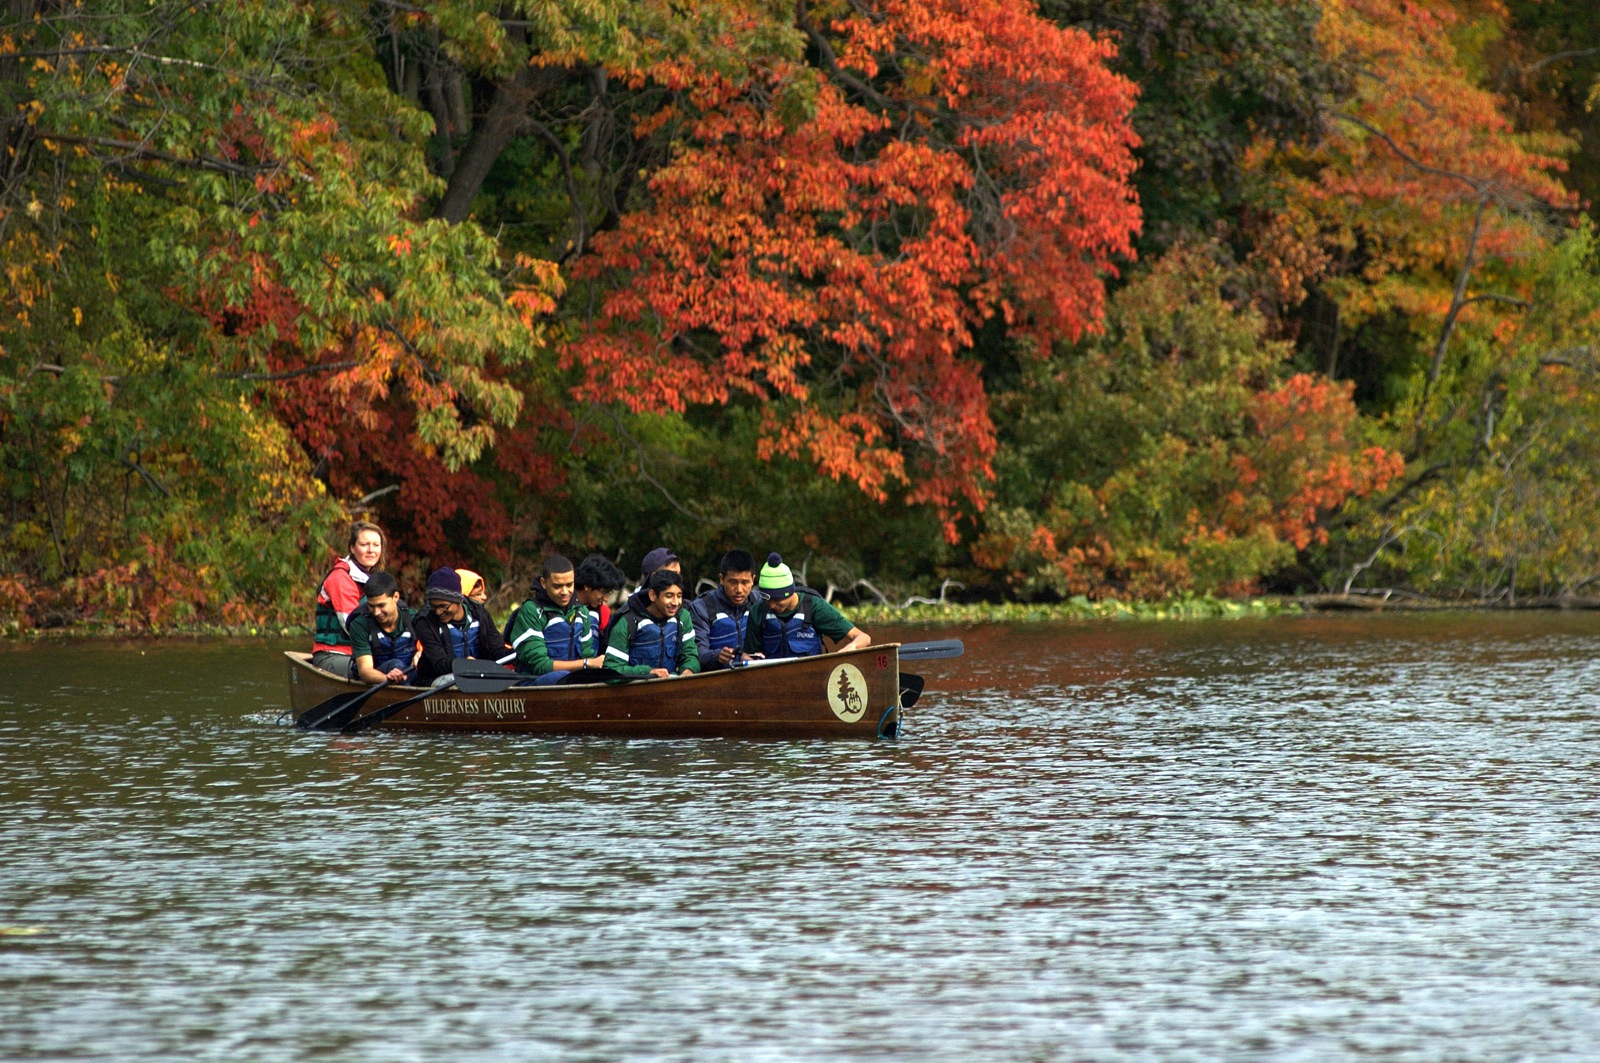 a group paddles a canoe along the Harlem River in the fall